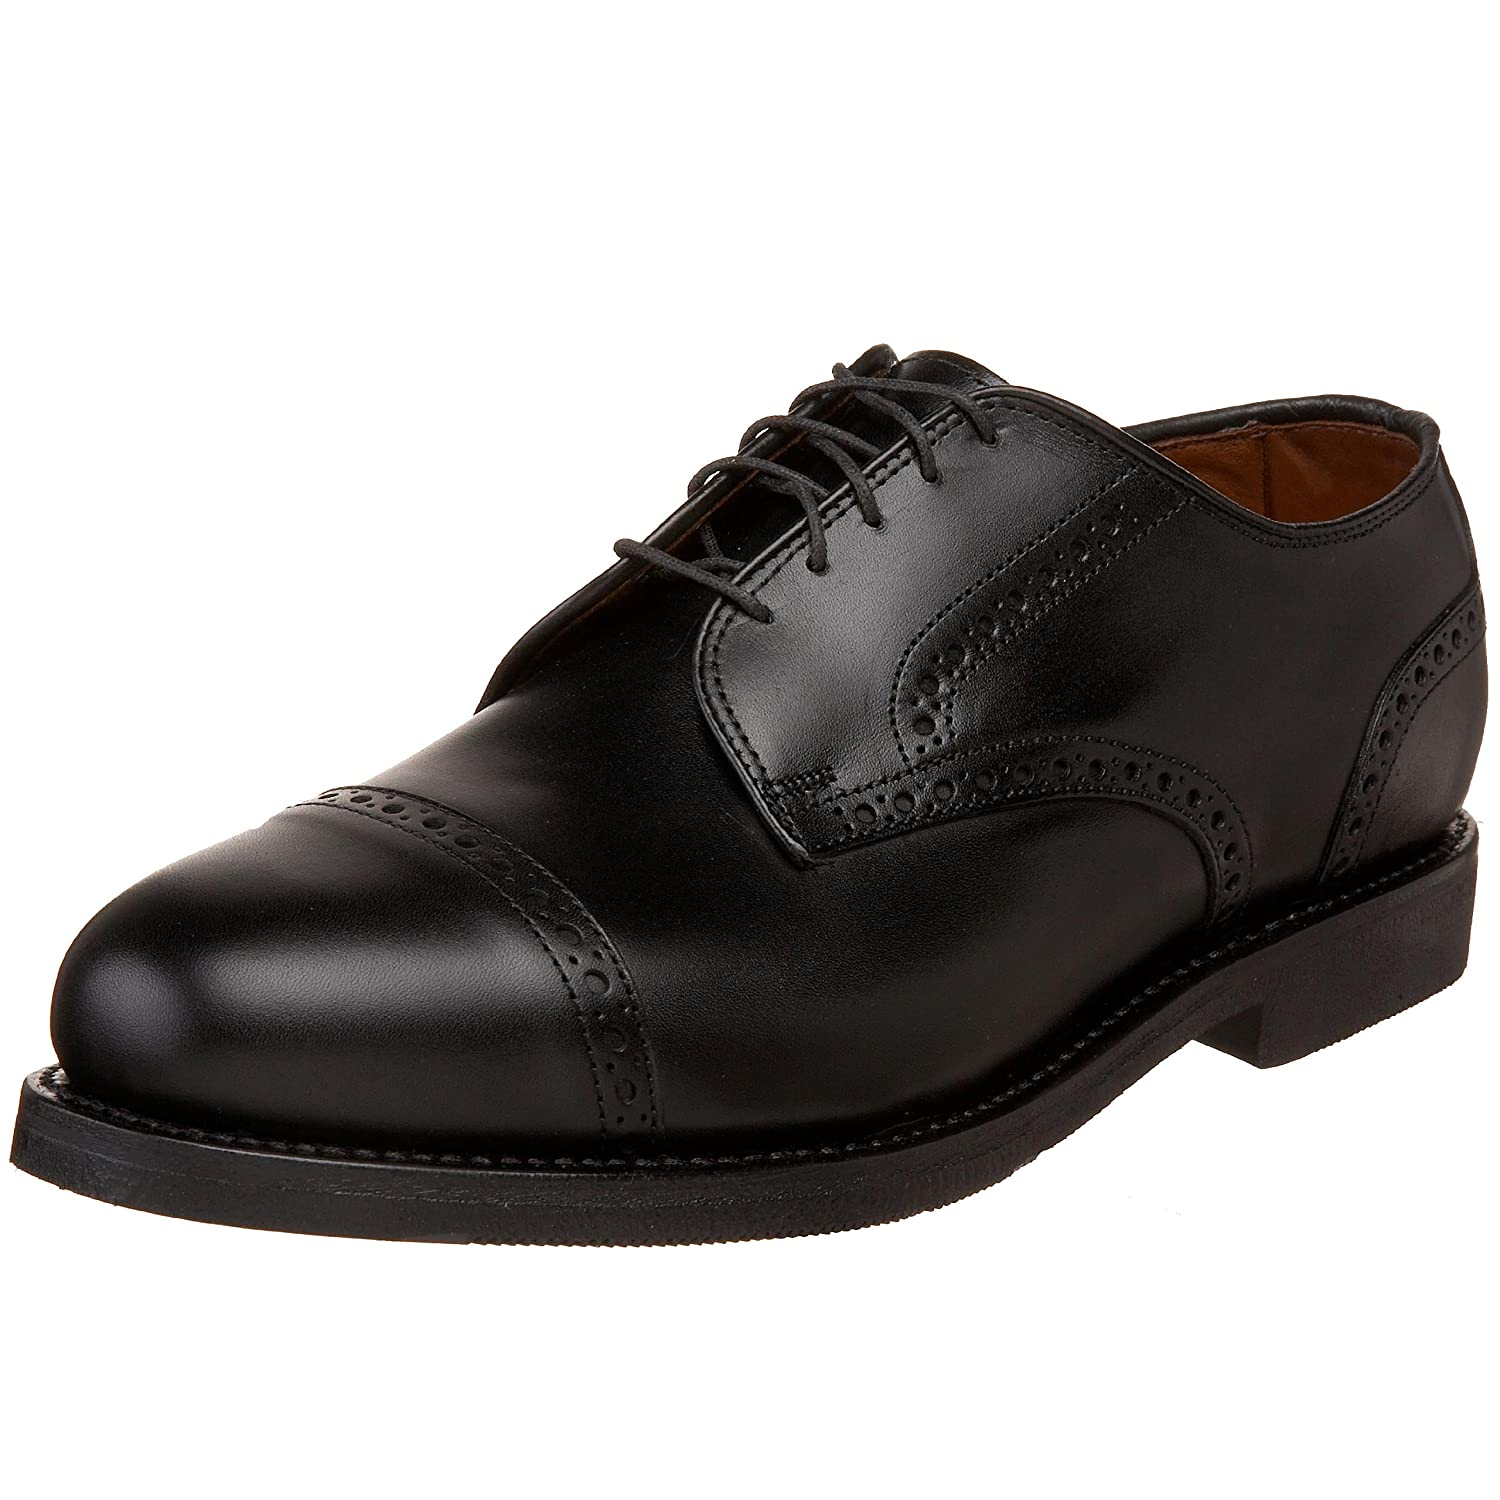 Allen Edmonds Men's Benton Oxford Black Calf US 9.5 C Allen-Edmonds